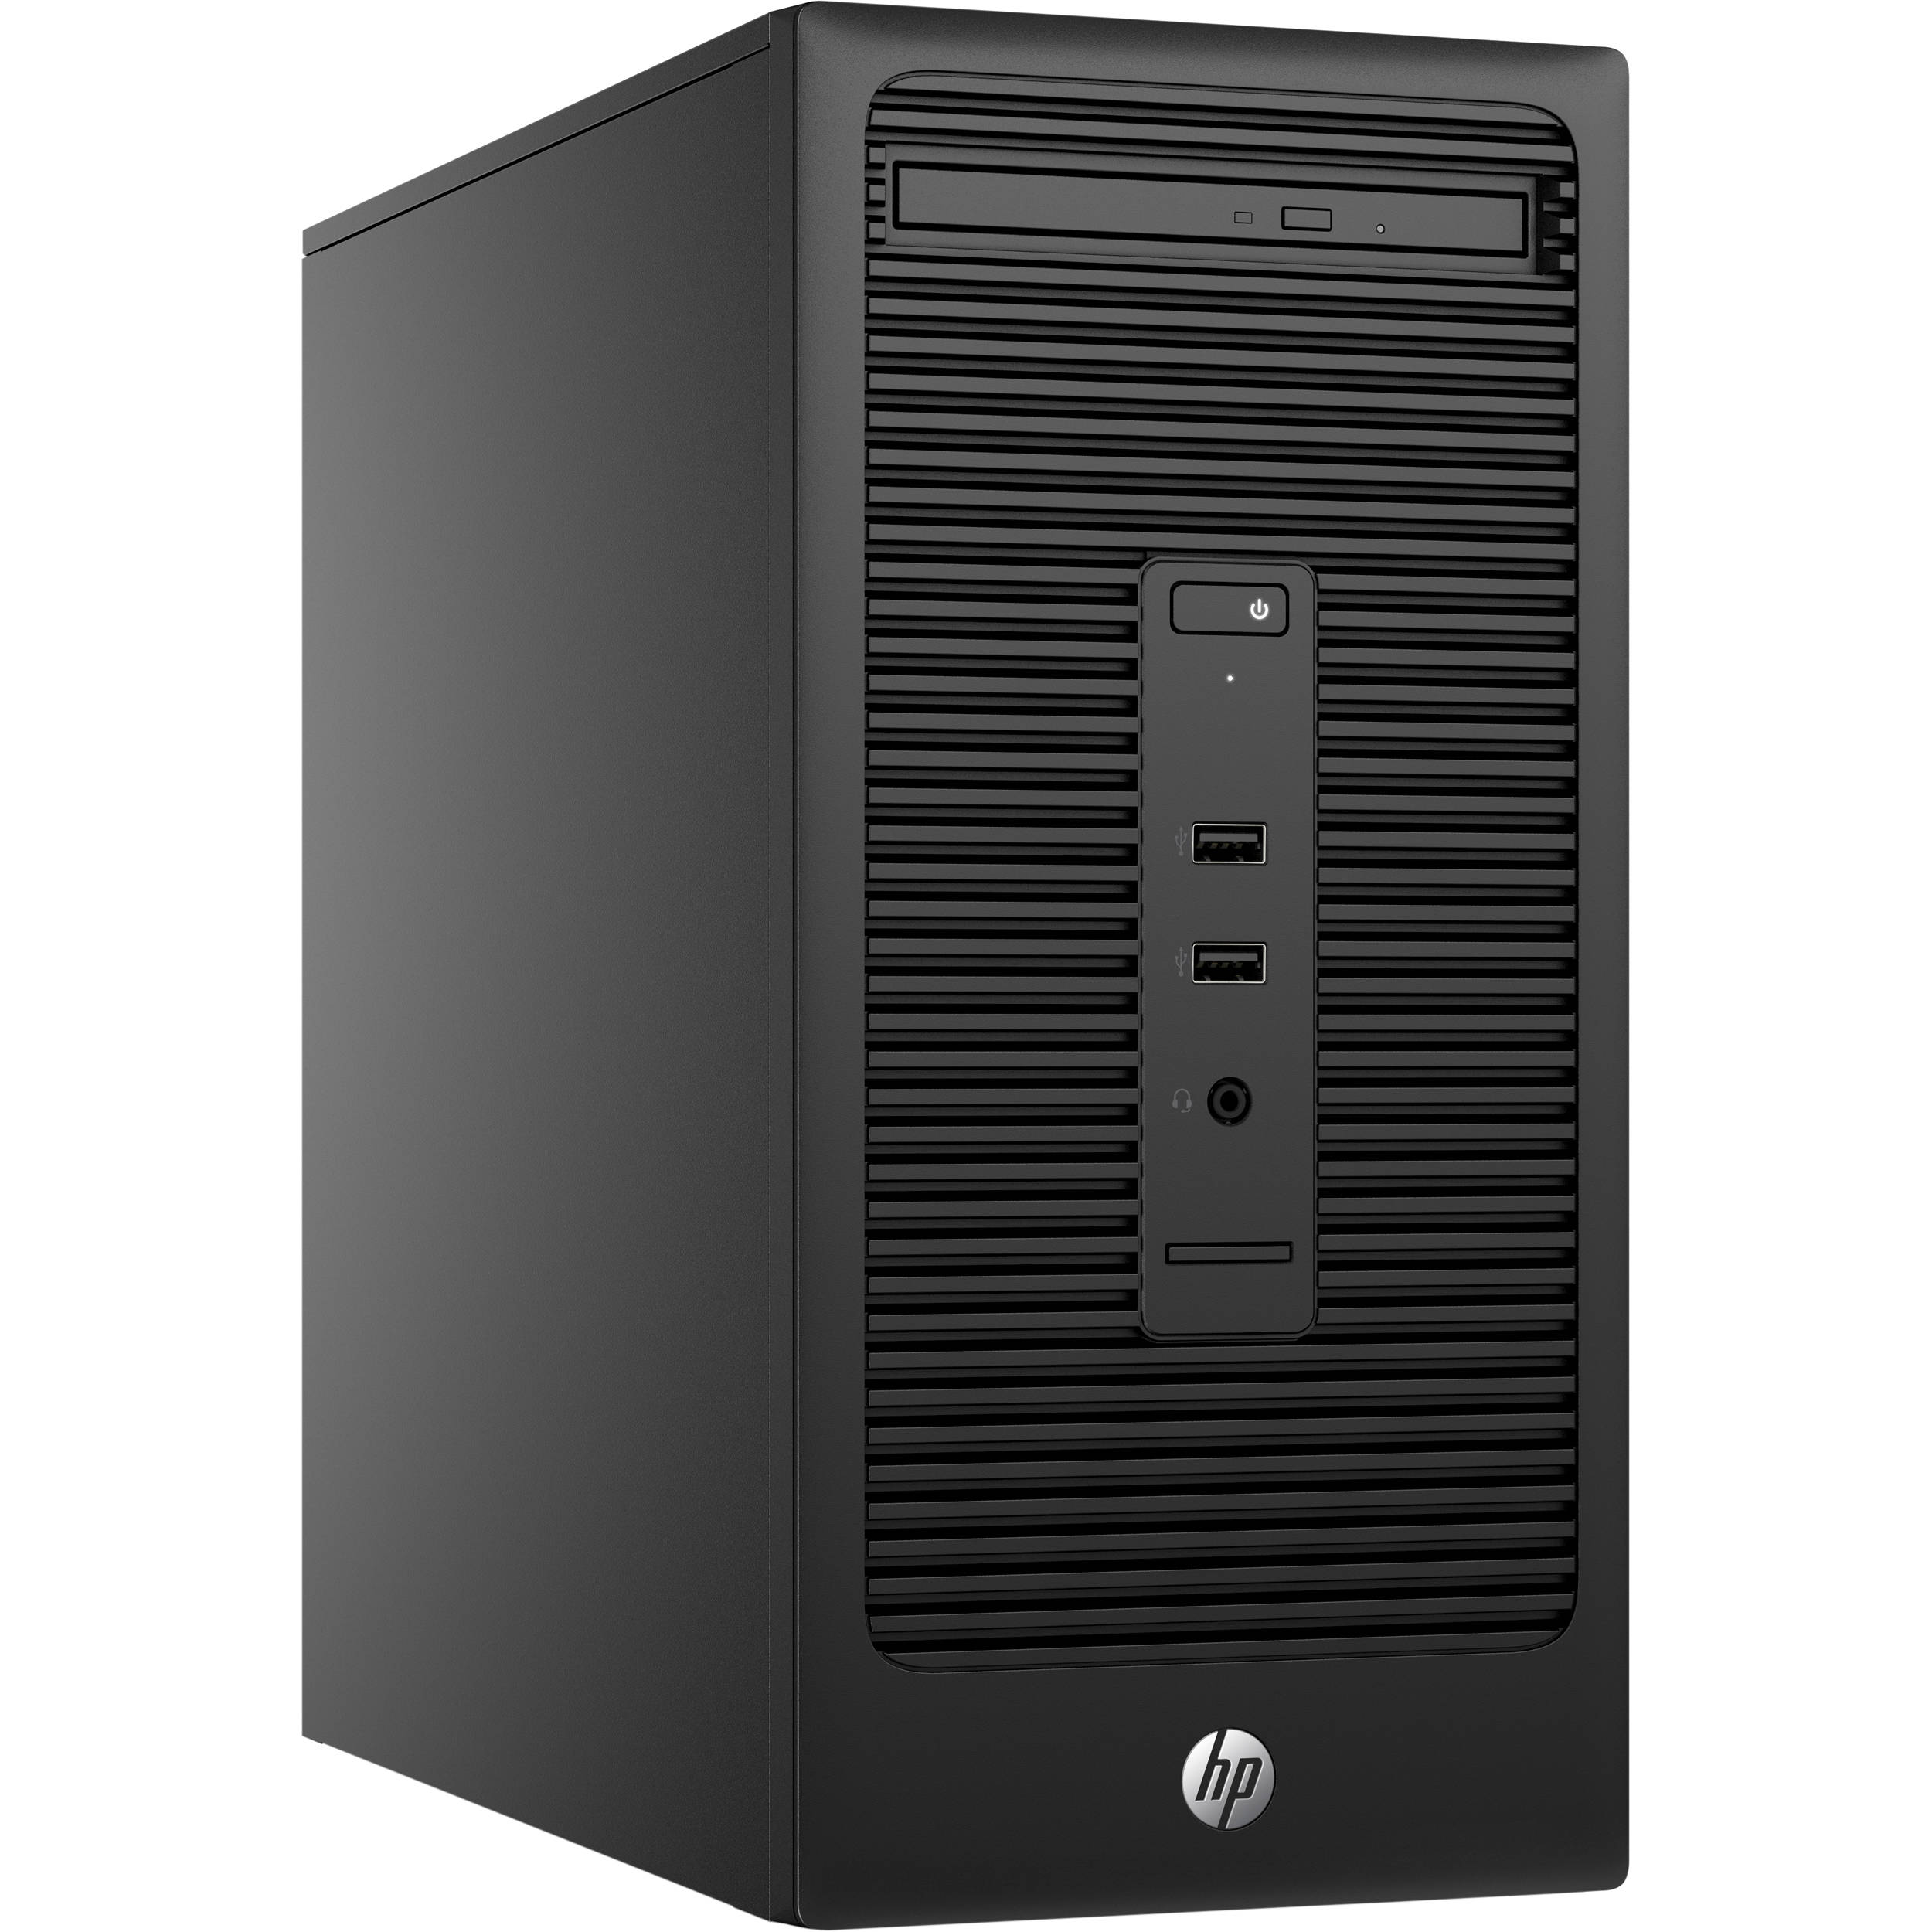 Hp 280 G2 Microtower Desktop Computer T6w22ut Aba B Amp H Photo